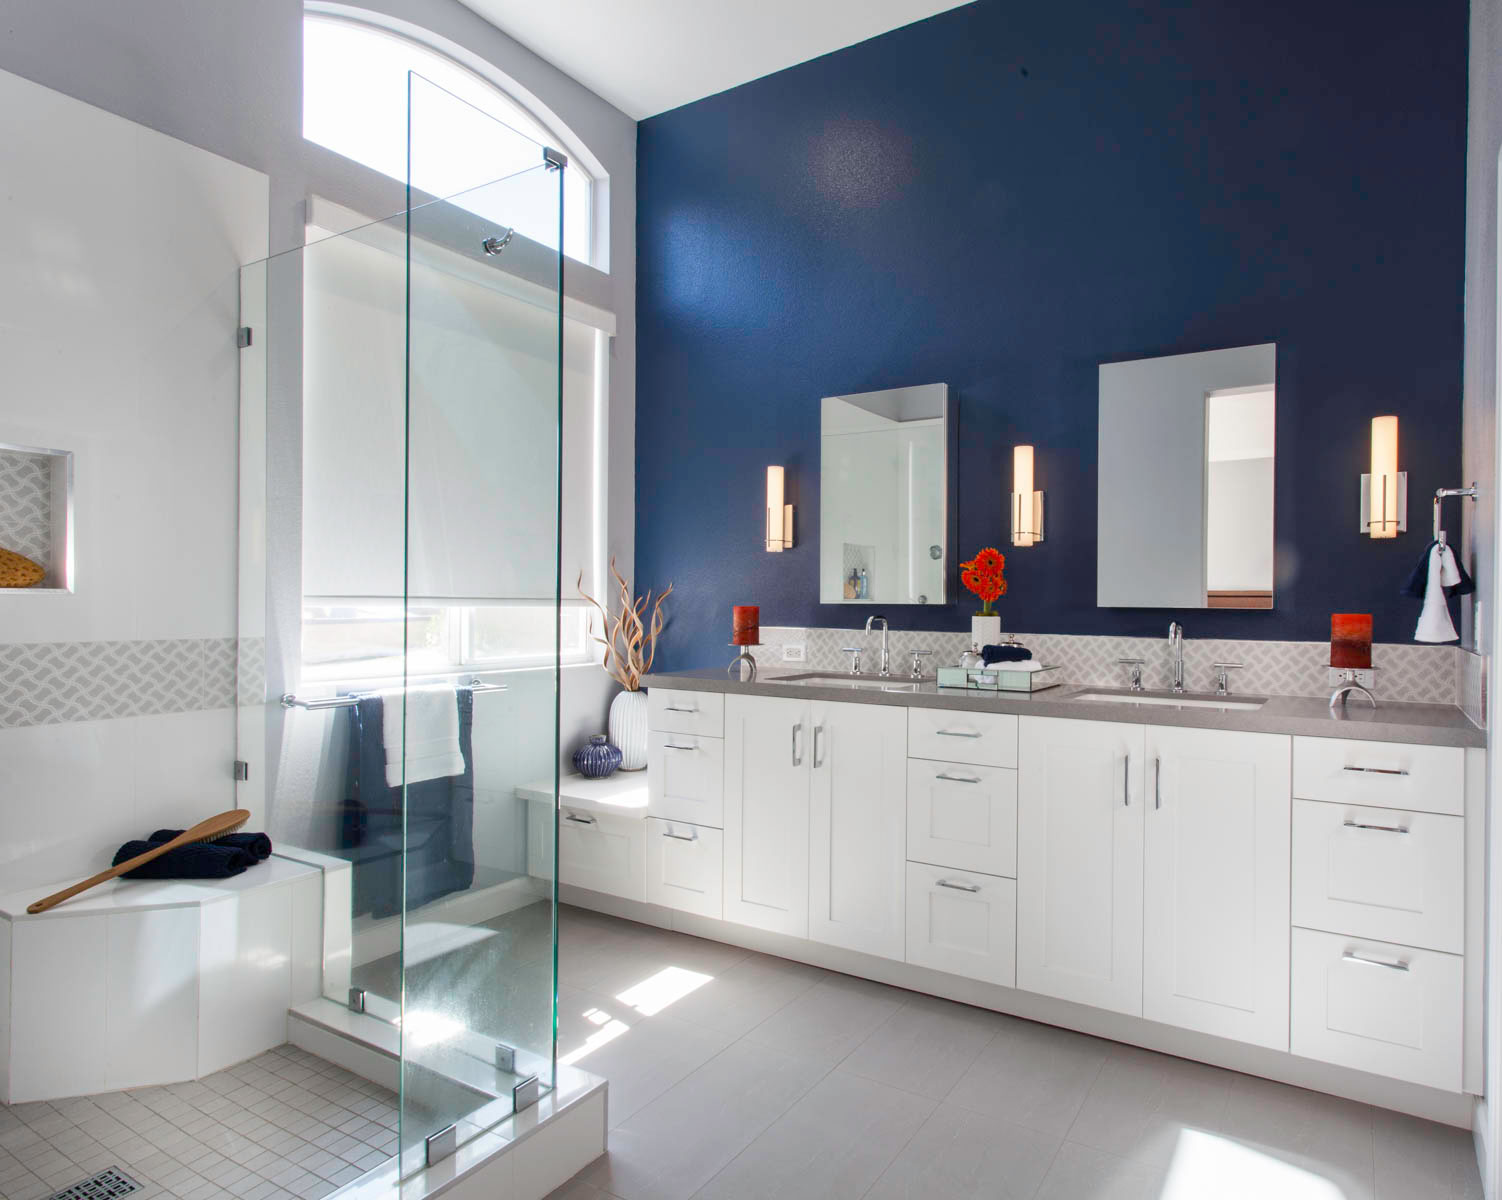 2019 Reader's Choice Bathroom of the Year blue wall paint